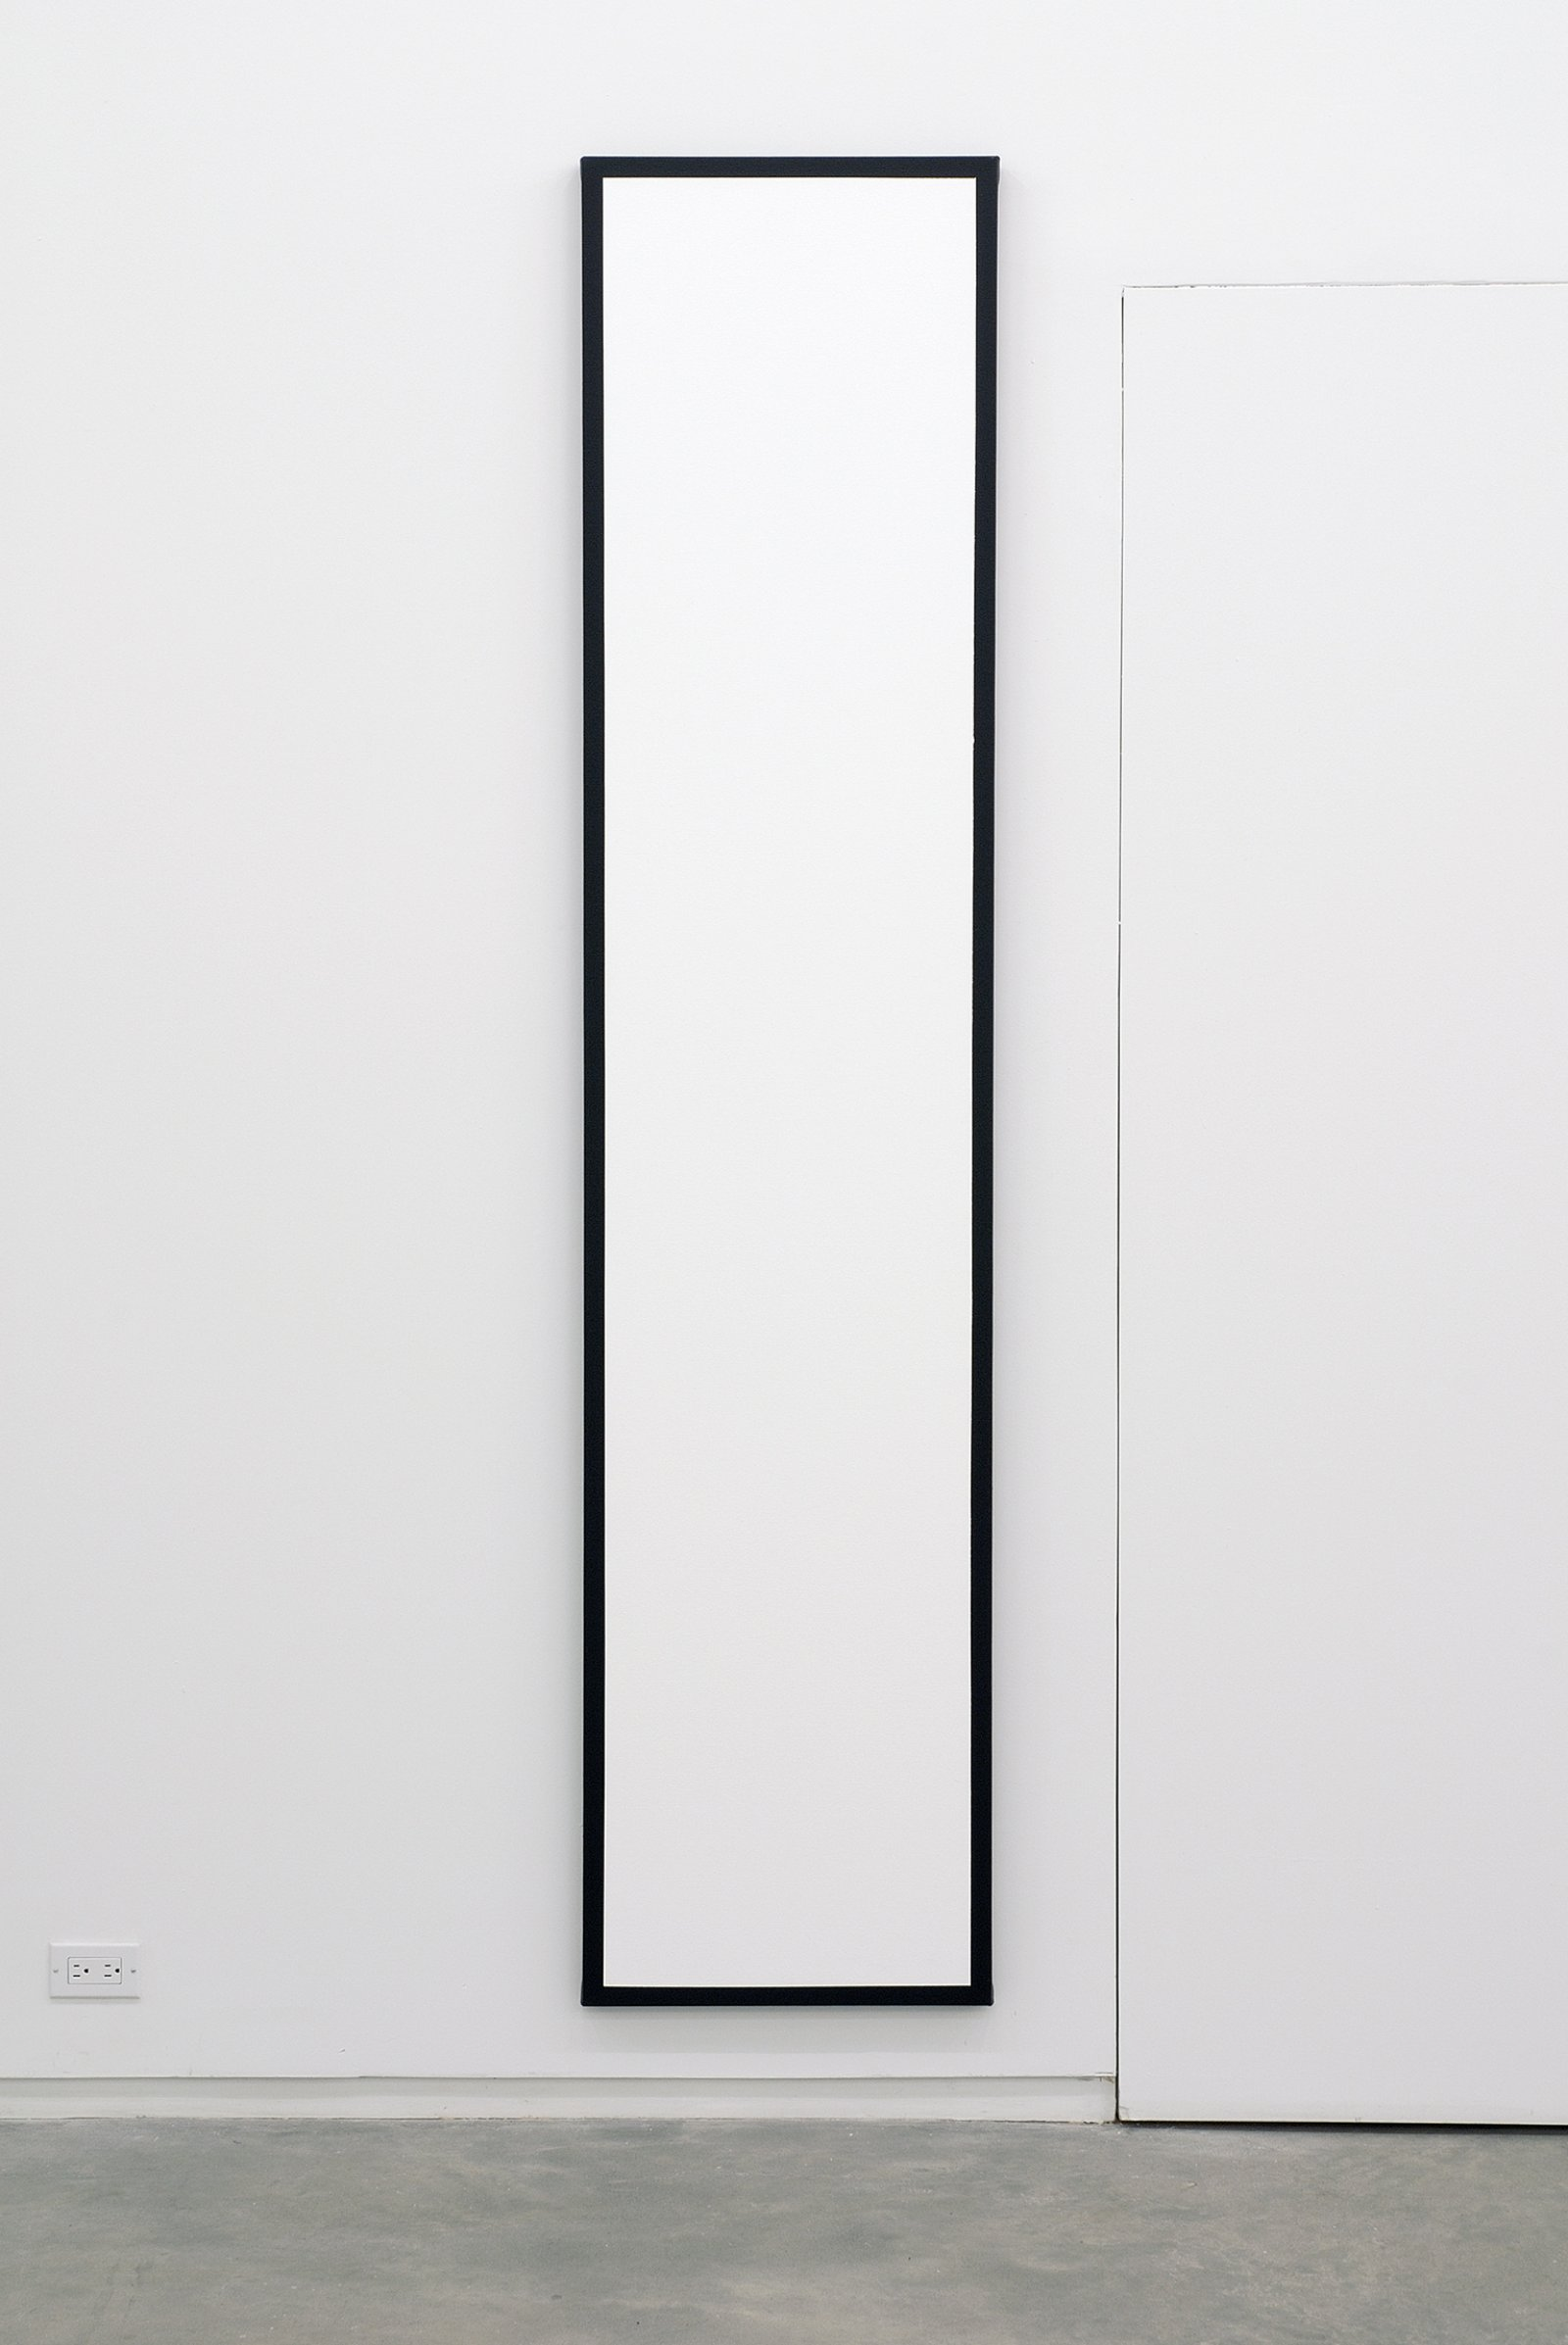 Ian Wallace, Untitled (White Monochrome with Black), 1967–2007, acrylic on canvas, 90 x 20 in. (229 x 51 cm)​ by Ian Wallace